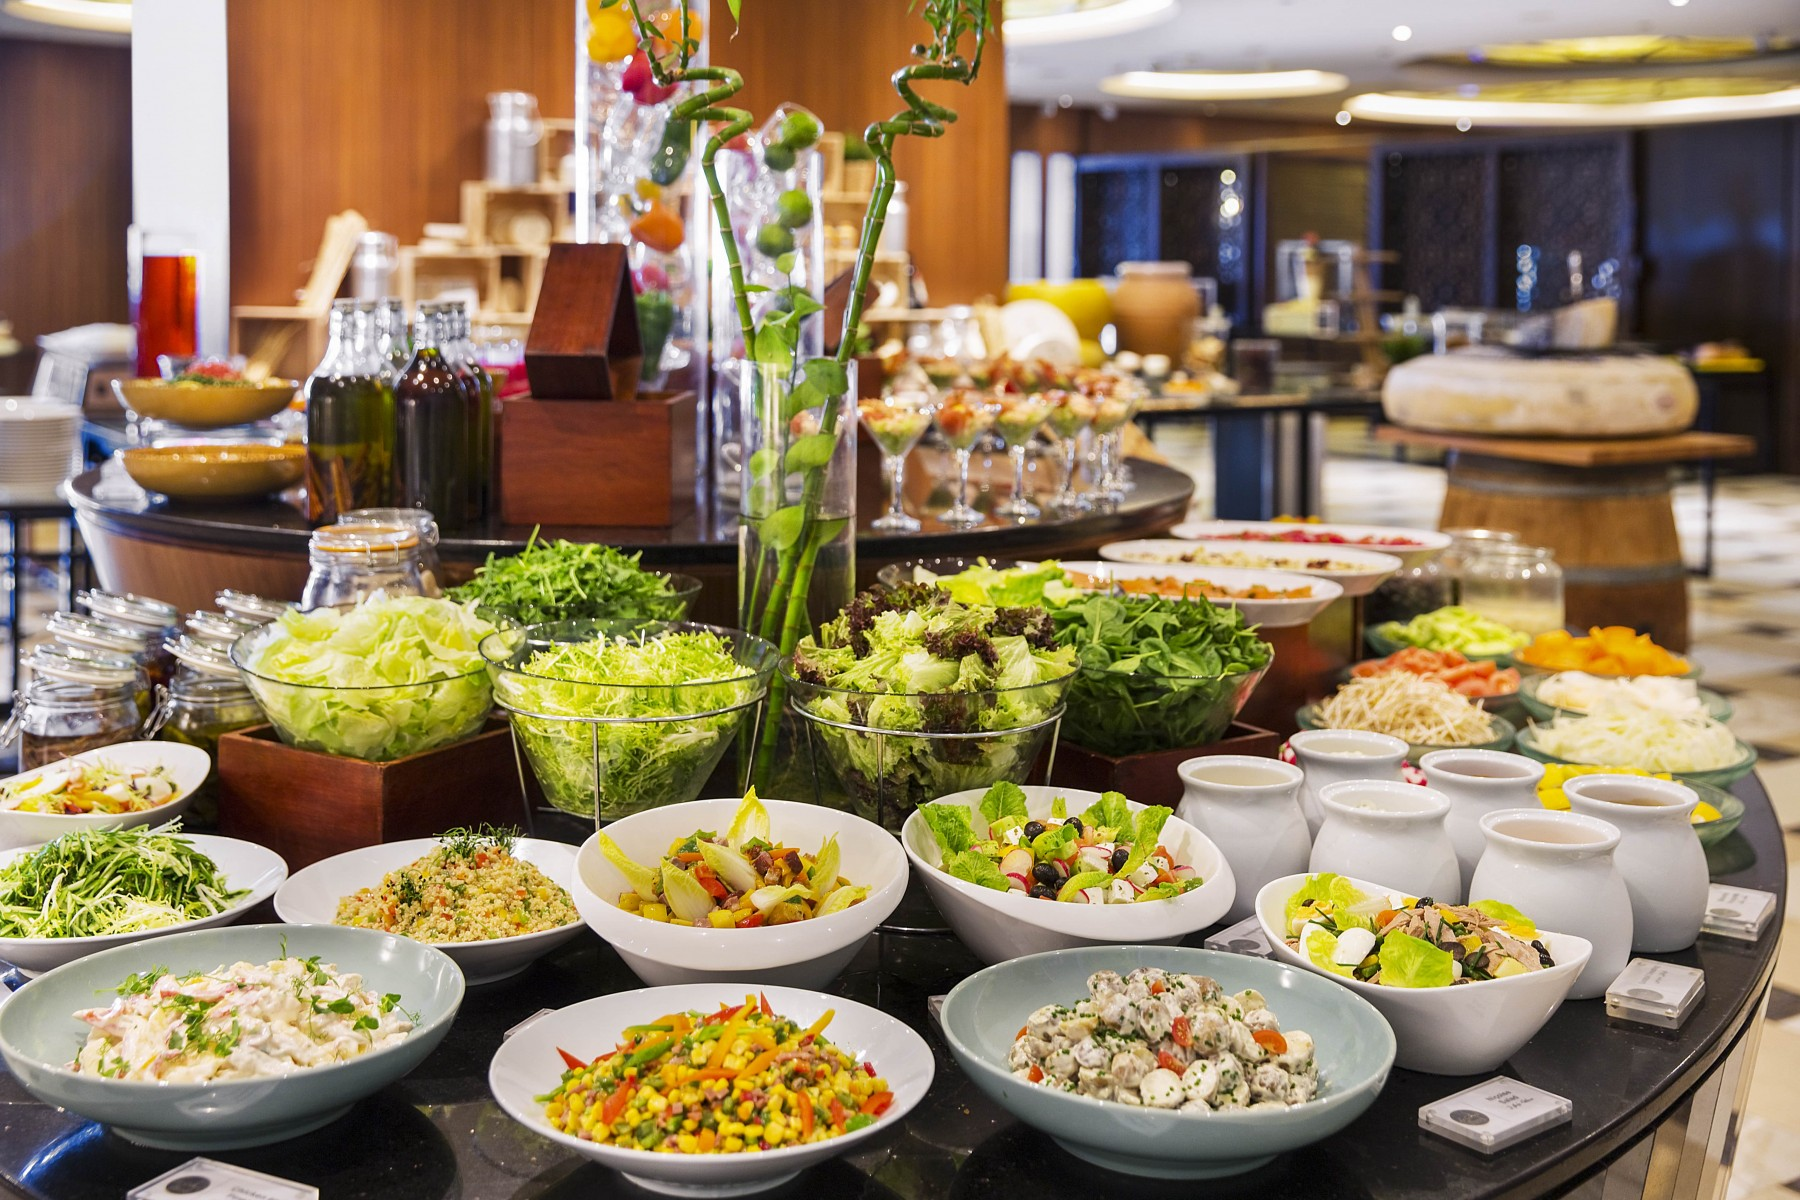 Lunch/Dinner Buffet at Howard Johnson Hotel Bur Dubai